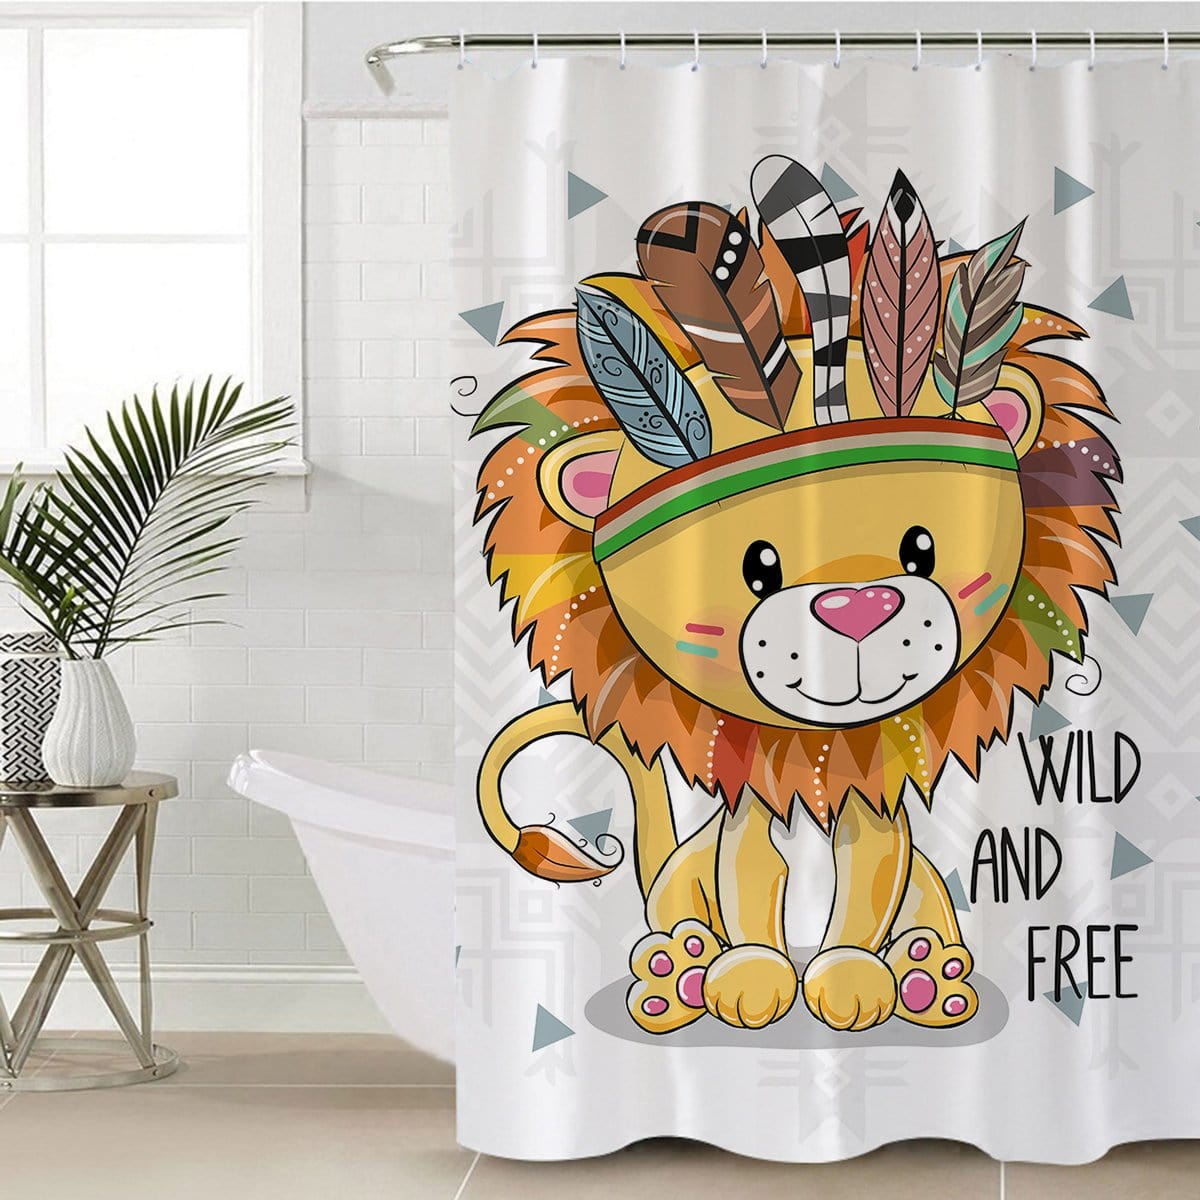 Wild and Free Cub Shower Curtain-Wild and Free Cub-Little Squiffy